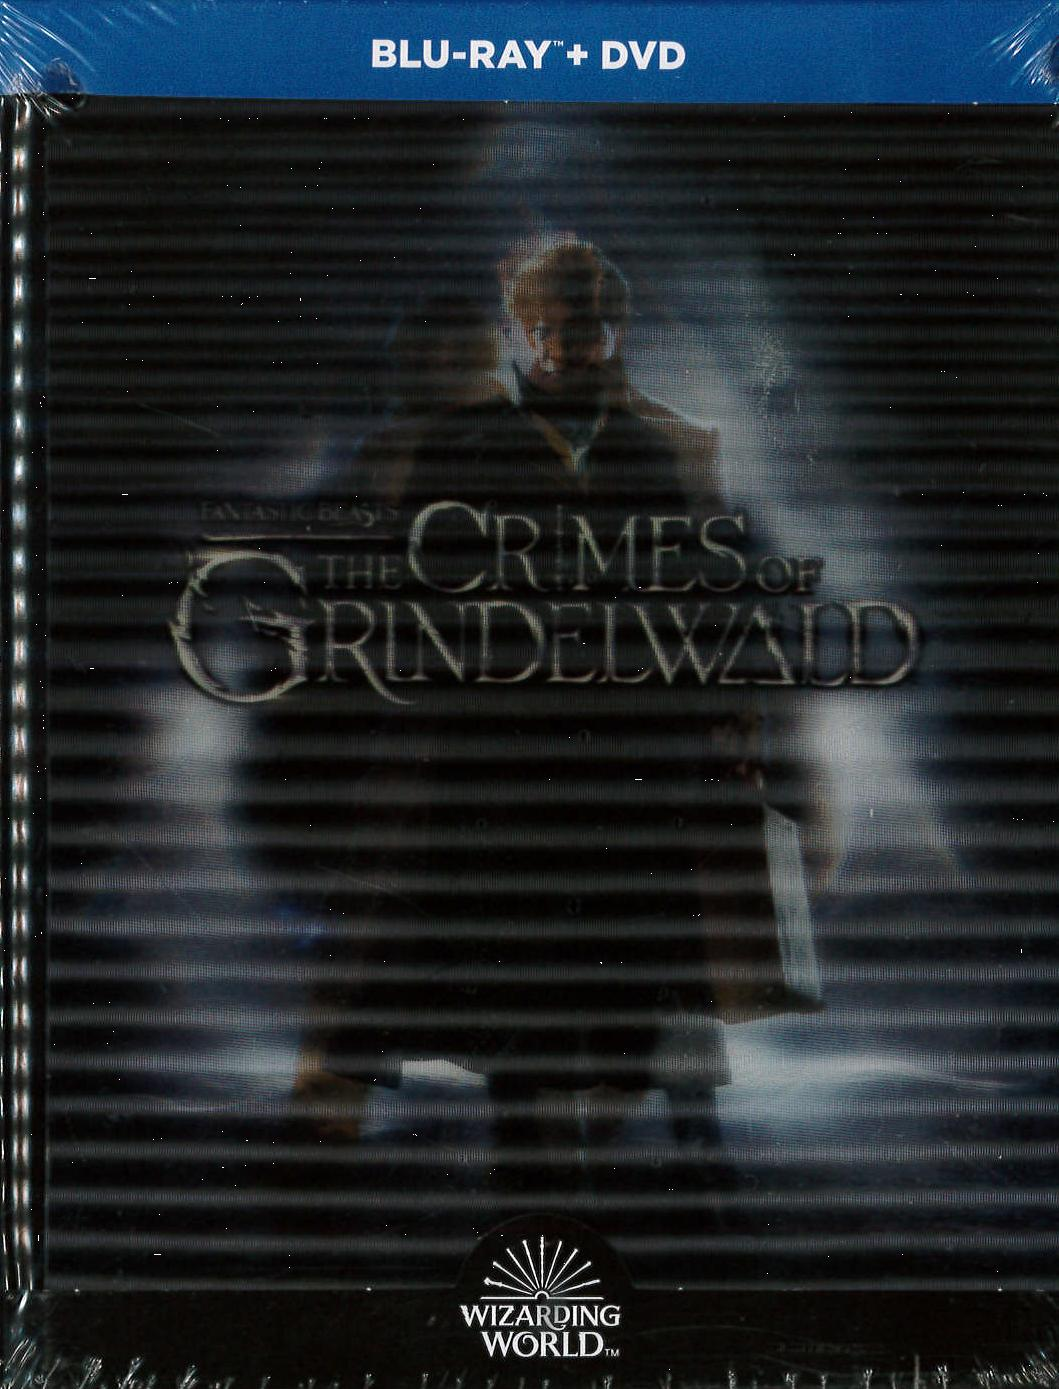 ANIMALI FANTASTICI - I CRIMINI DI GRINDELWALD (DIGIBOOK) (LTD) (